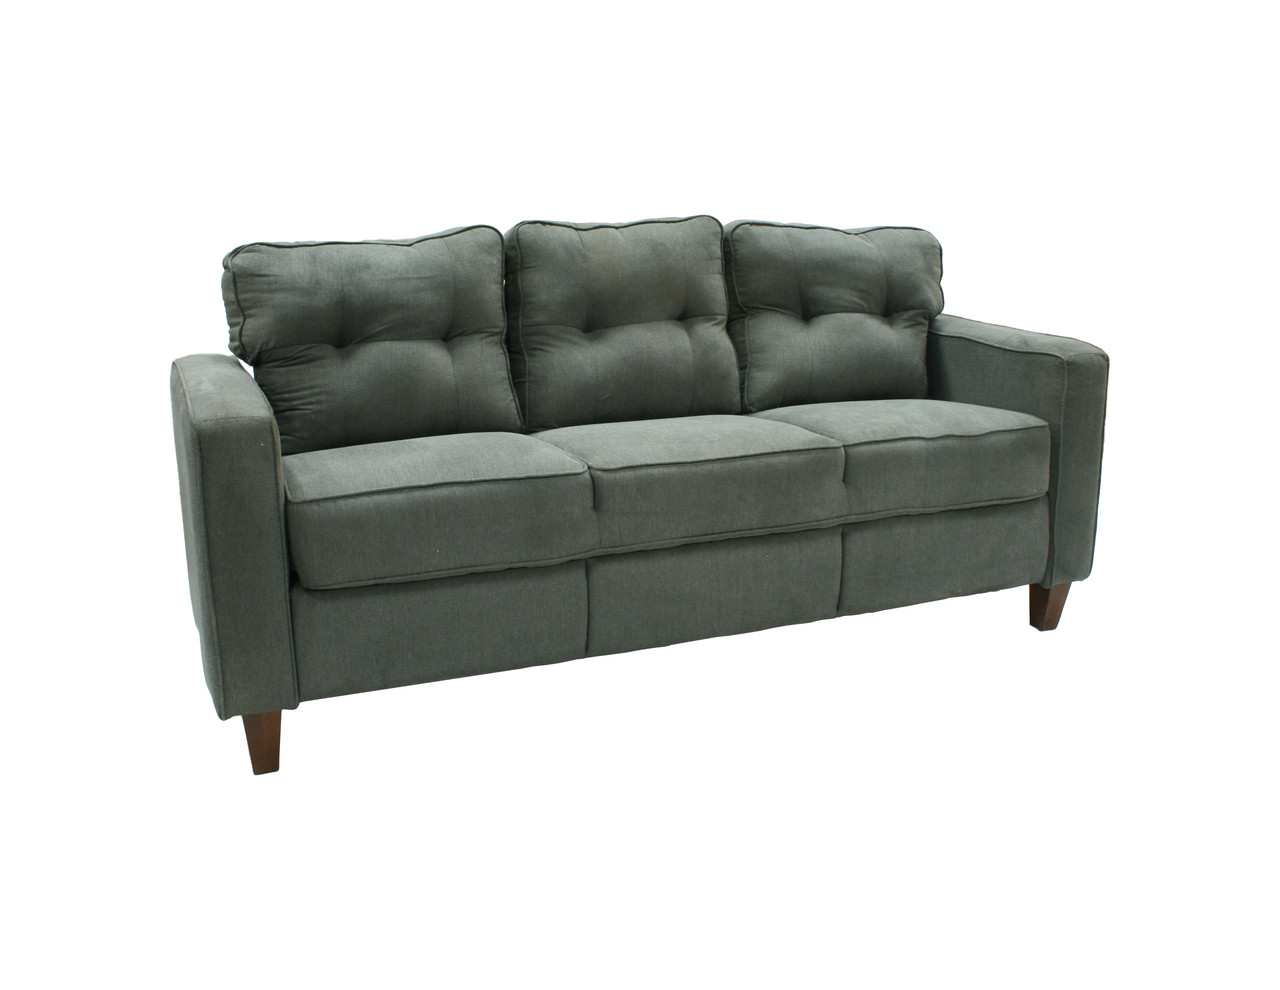 Fantastic 74 Rv Jack Knife Sofa In Evergreen Alphanode Cool Chair Designs And Ideas Alphanodeonline